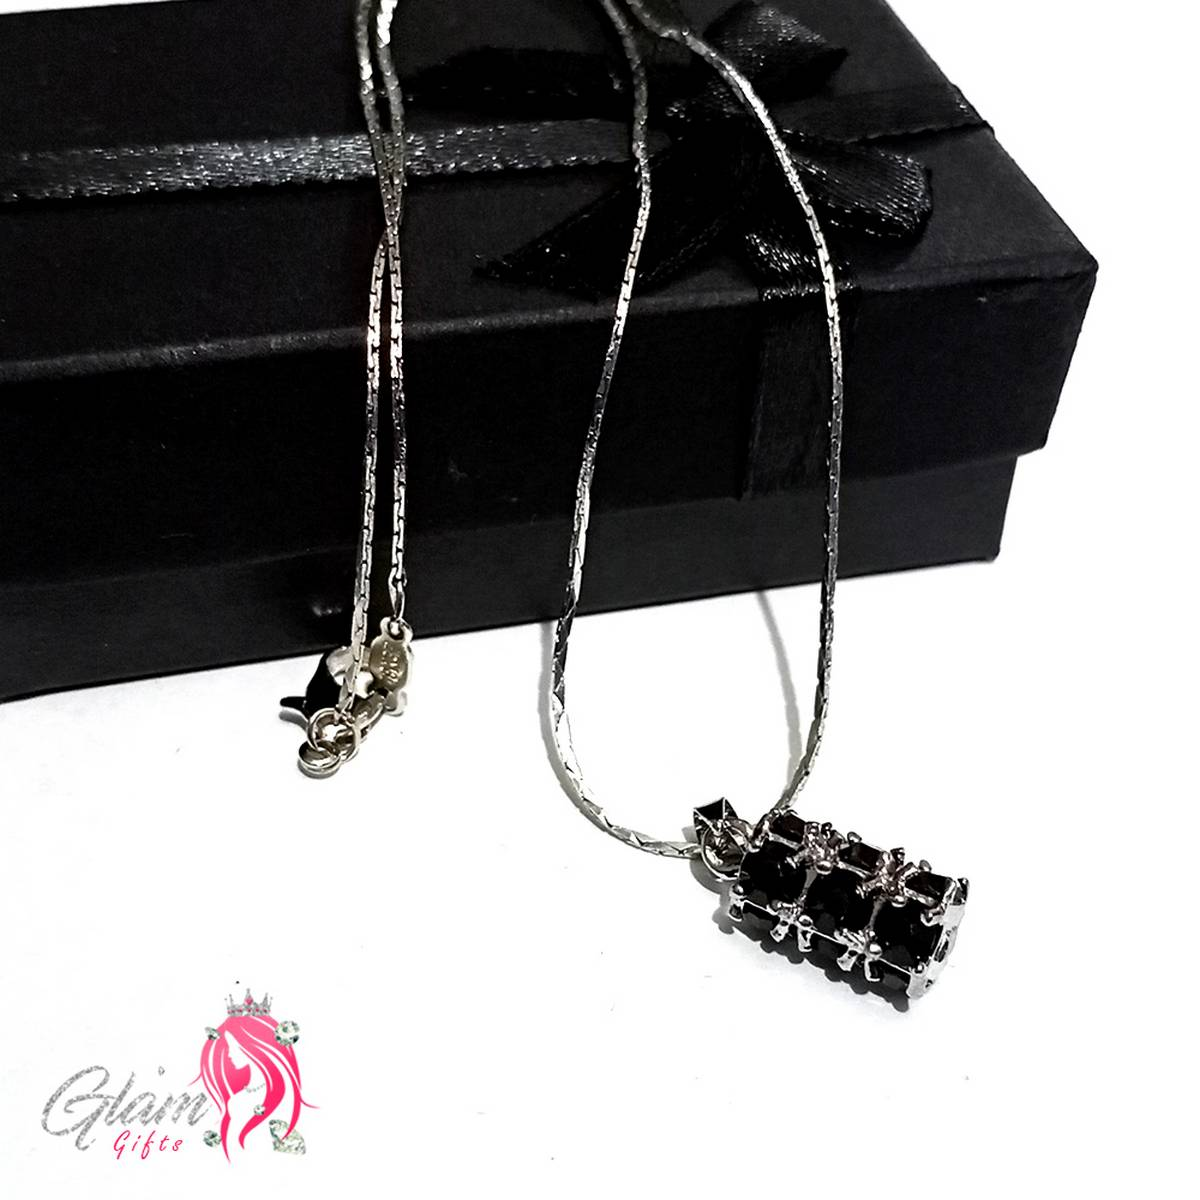 Elegant Black Pendant Necklace with  Gift Box for Girls,women,Friends